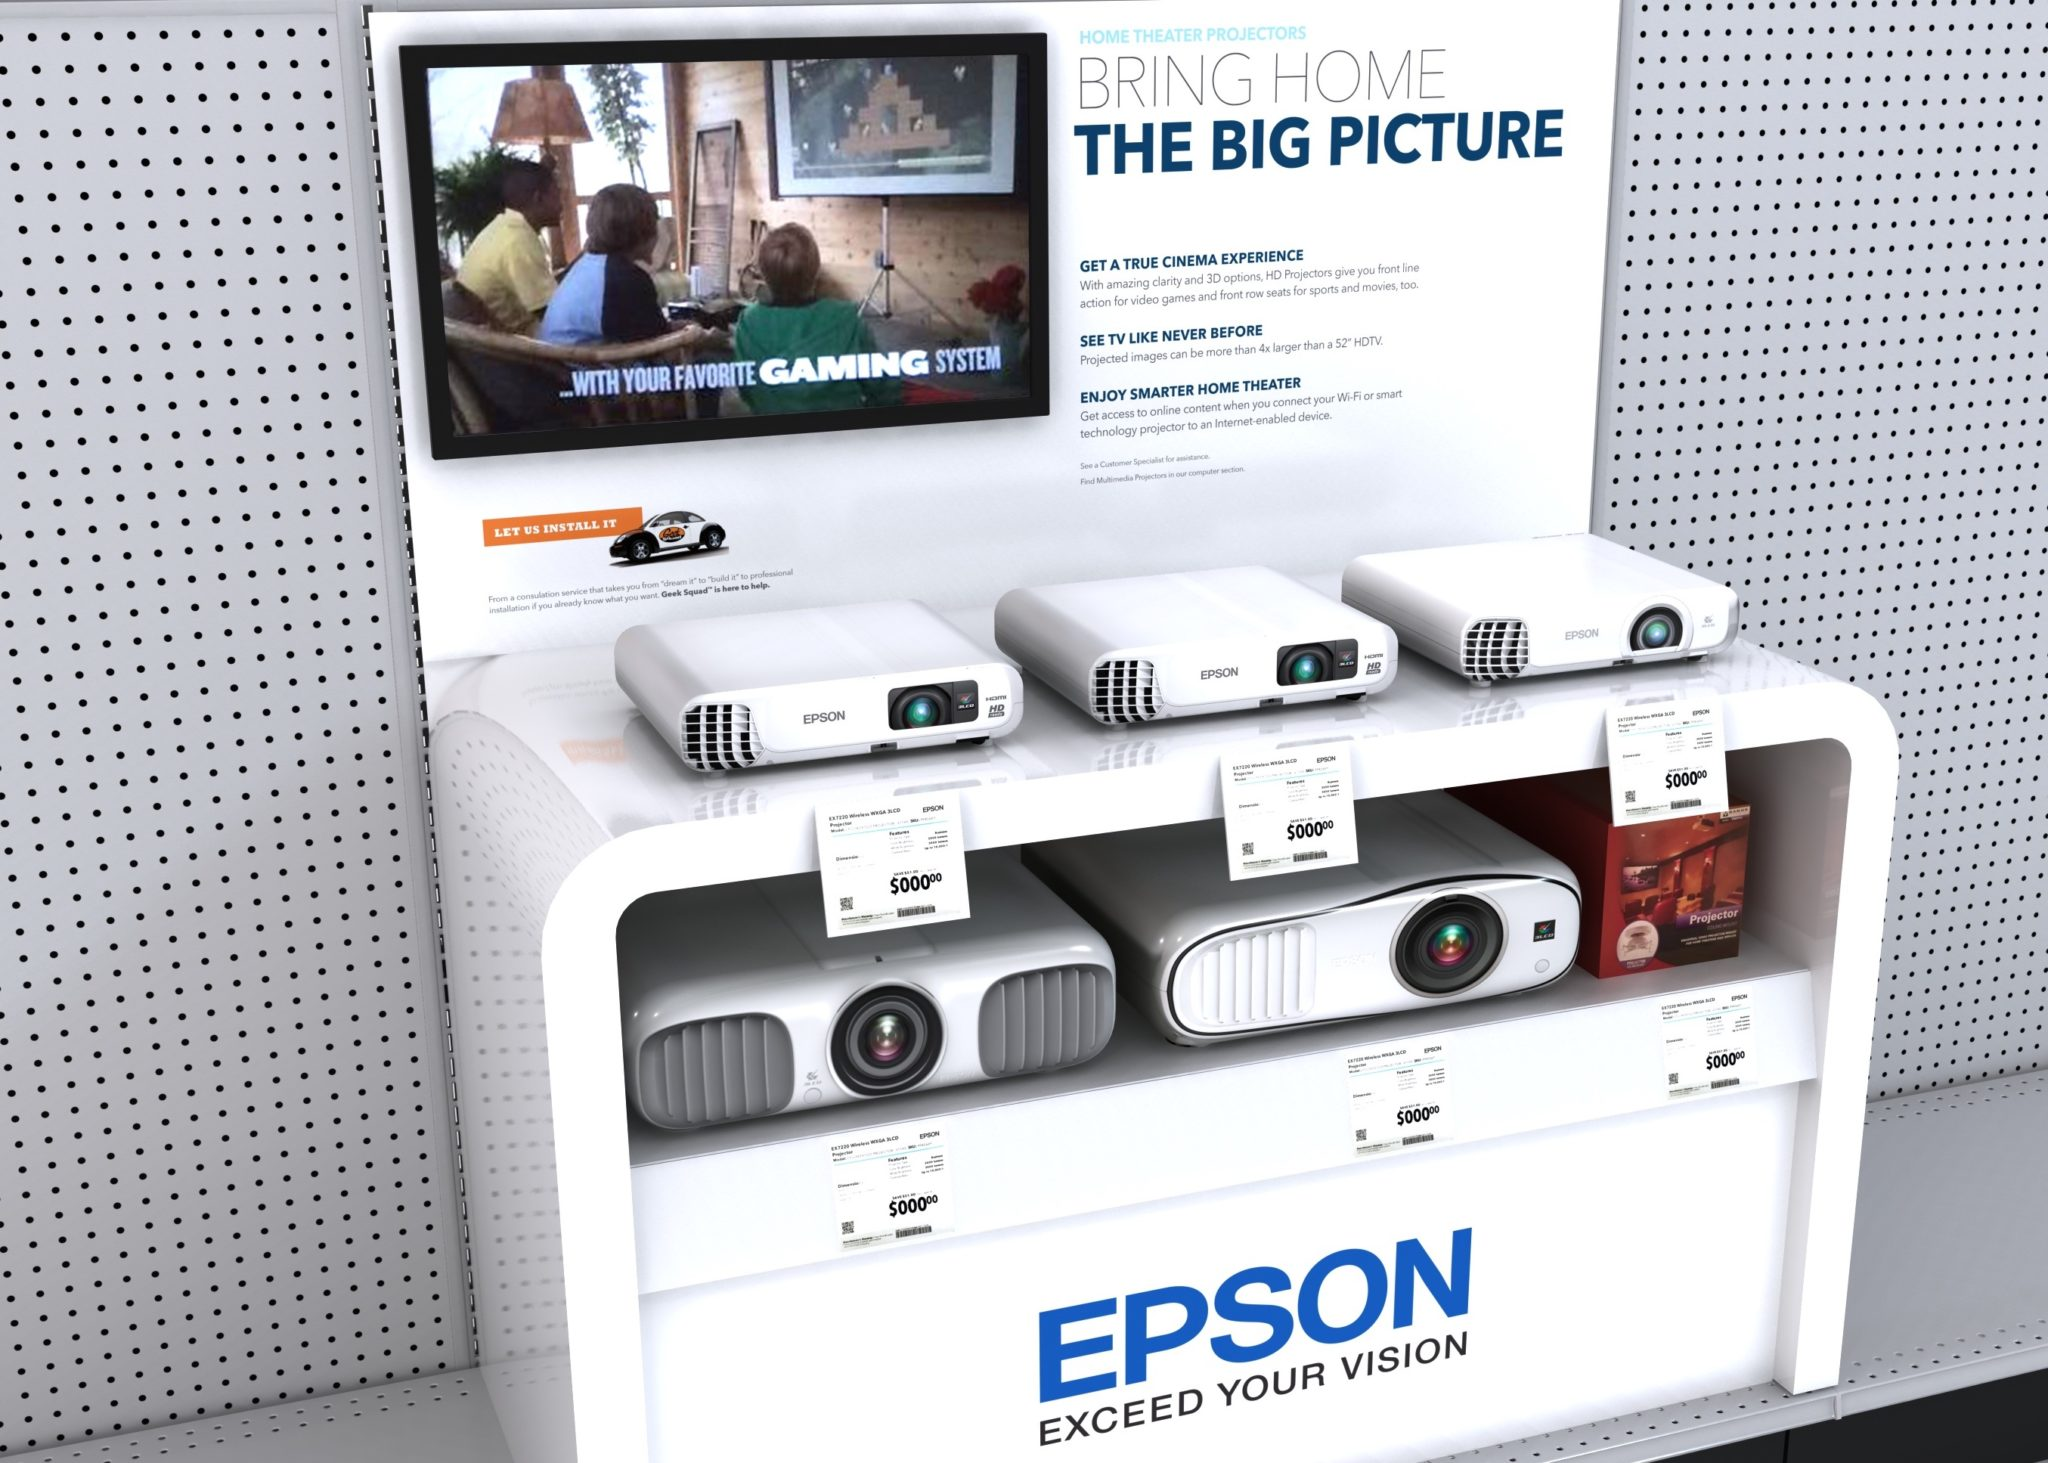 Epson Retail Display with Digital Signage